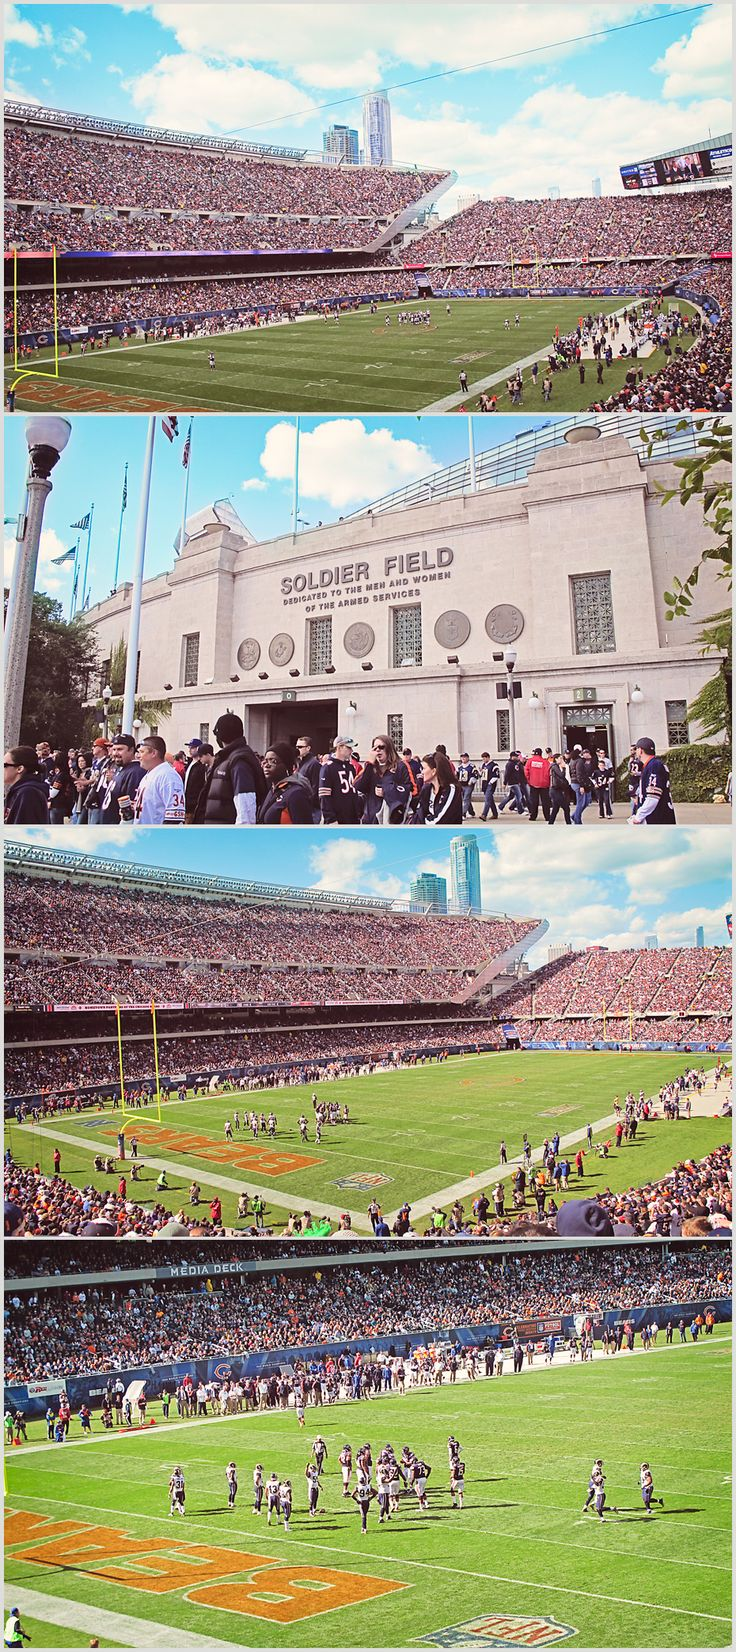 Go to a game at Soldier Field